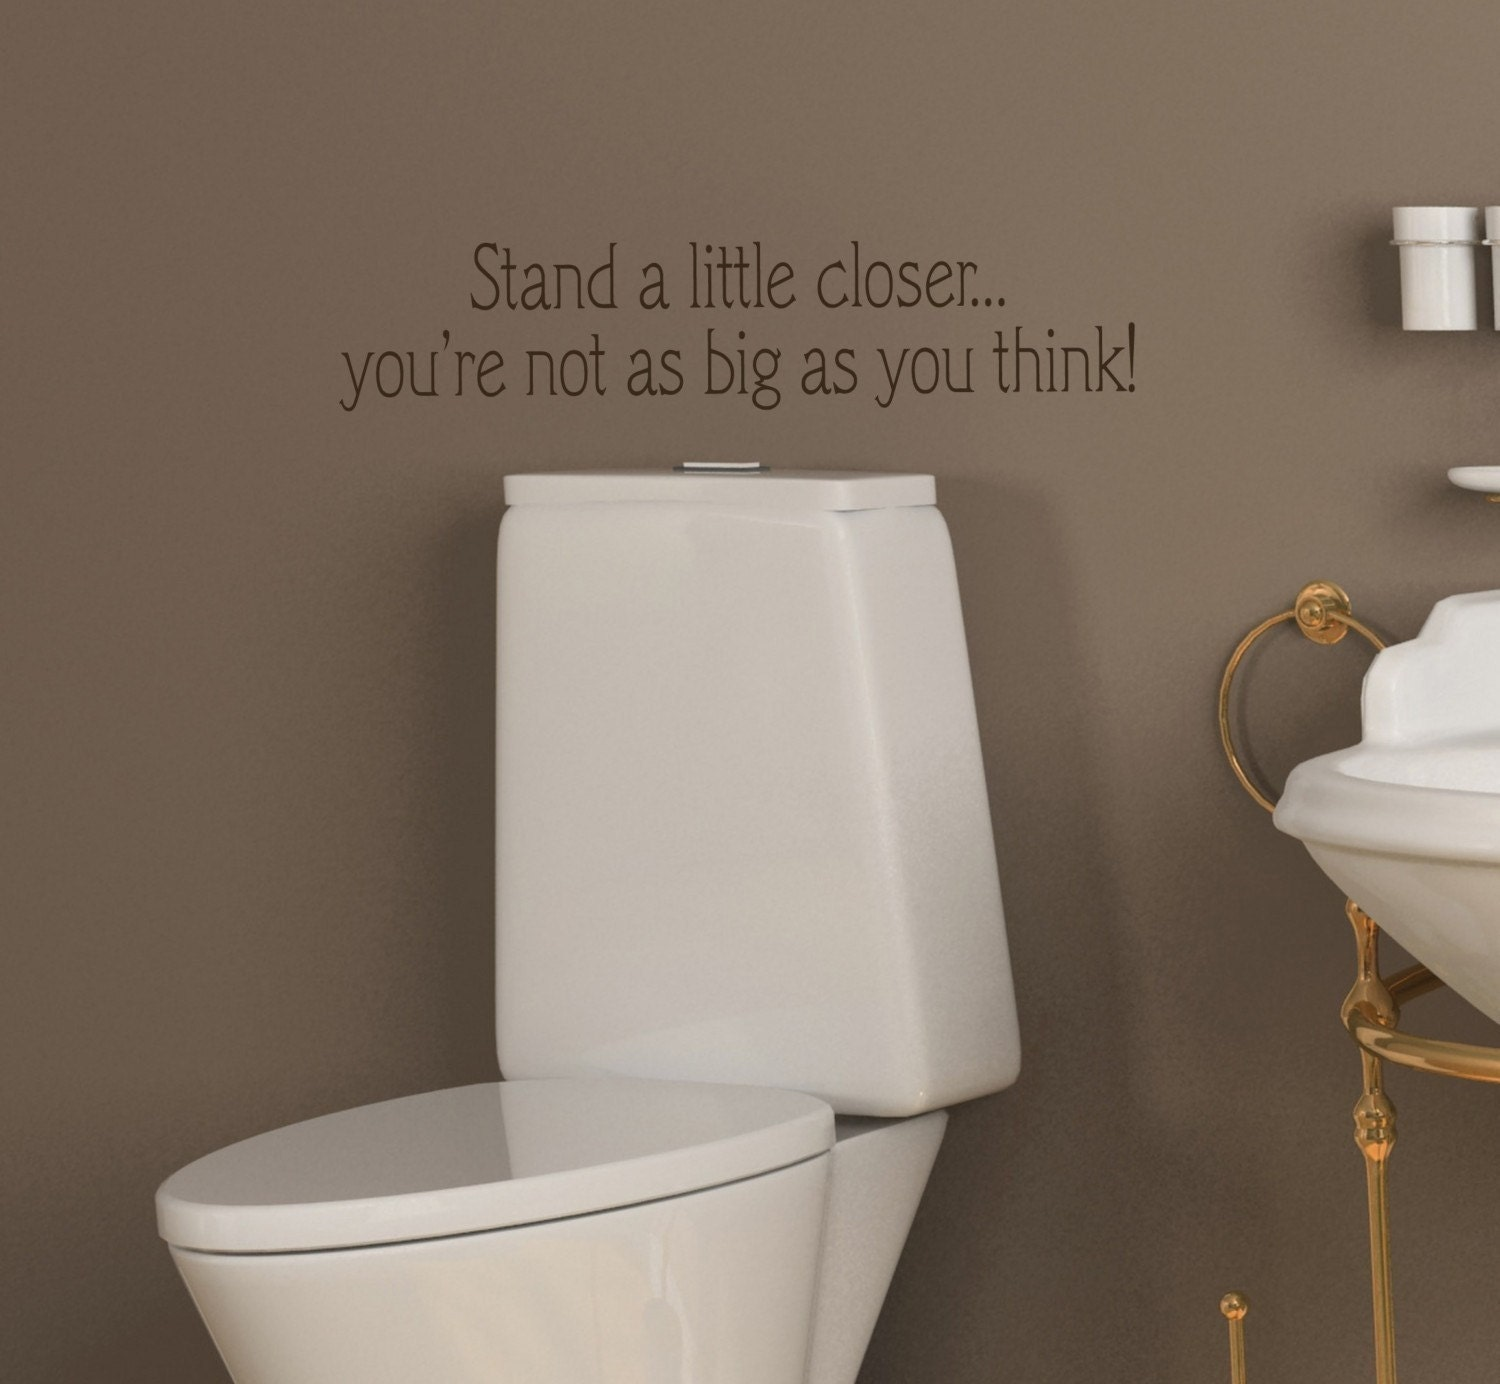 20x5 Funny Bathroom Toilet Stand a little closer Vinyl Wall Lettering Words Quotes Decals Art Custom Willow Creek Signs